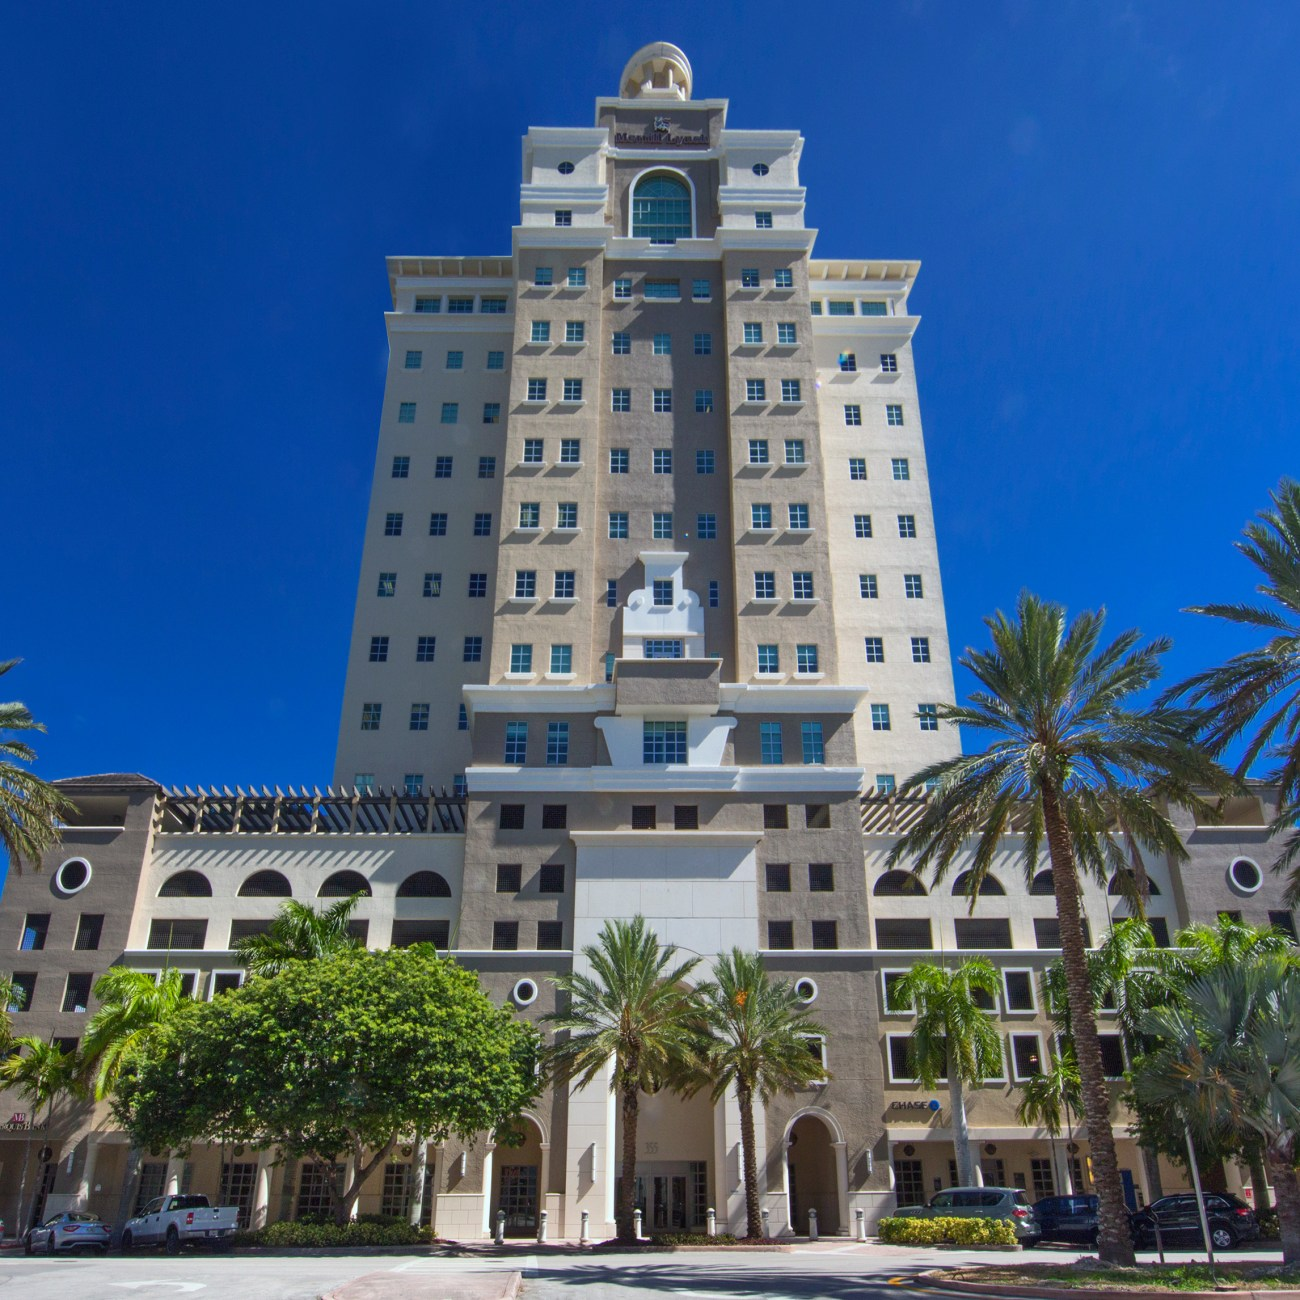 Cushman & Wakefield Secures Two New-to-Market Tenants in Coral Gables with Cosentino and Kimley-Horn at 355 Alhambra